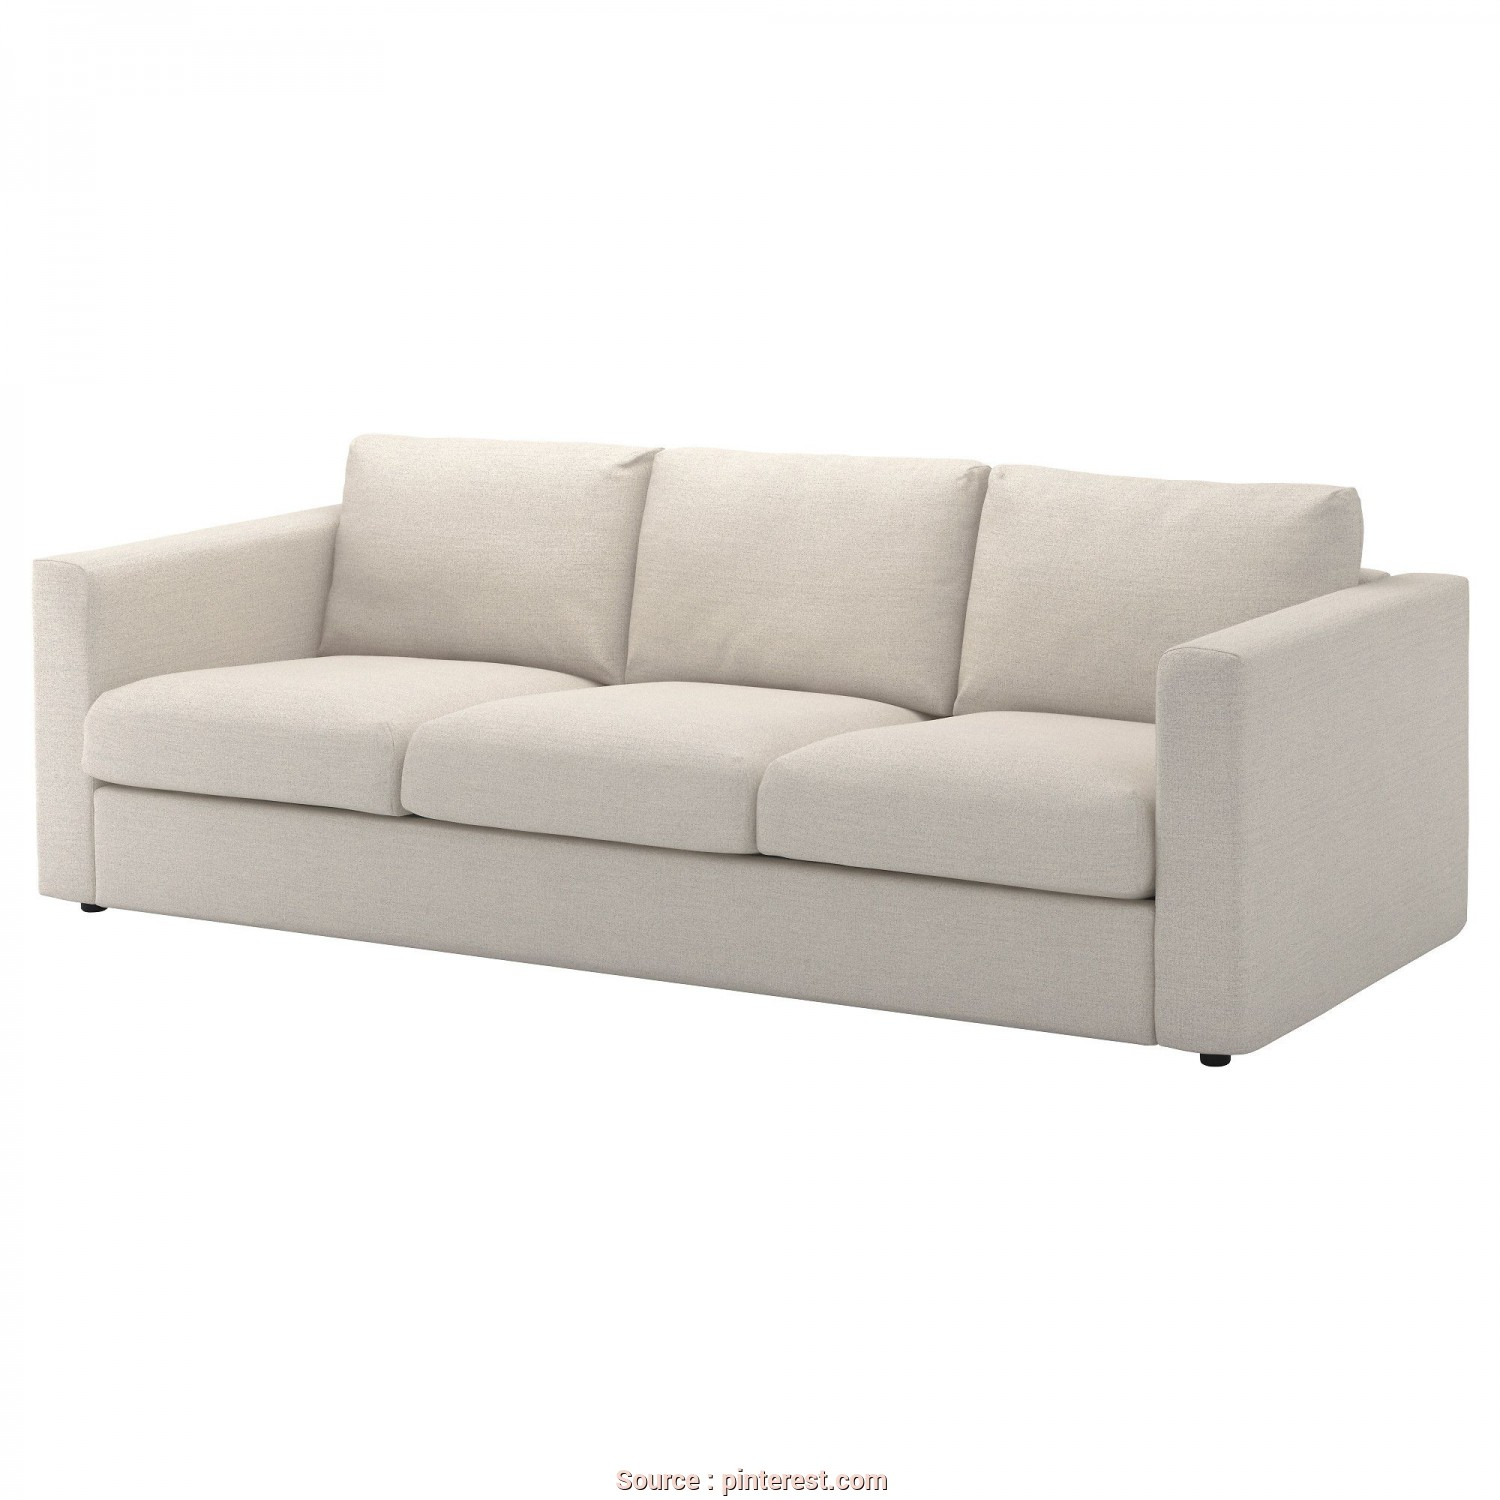 Divano Ikea Knislinge, Eccezionale IKEA, VIMLE, Sofa, Gunnared Medium Gray, , This Soft, Cozy Sofa Will Have A Long Life As, Seat Cushions, Filled With High Resilience Foam That